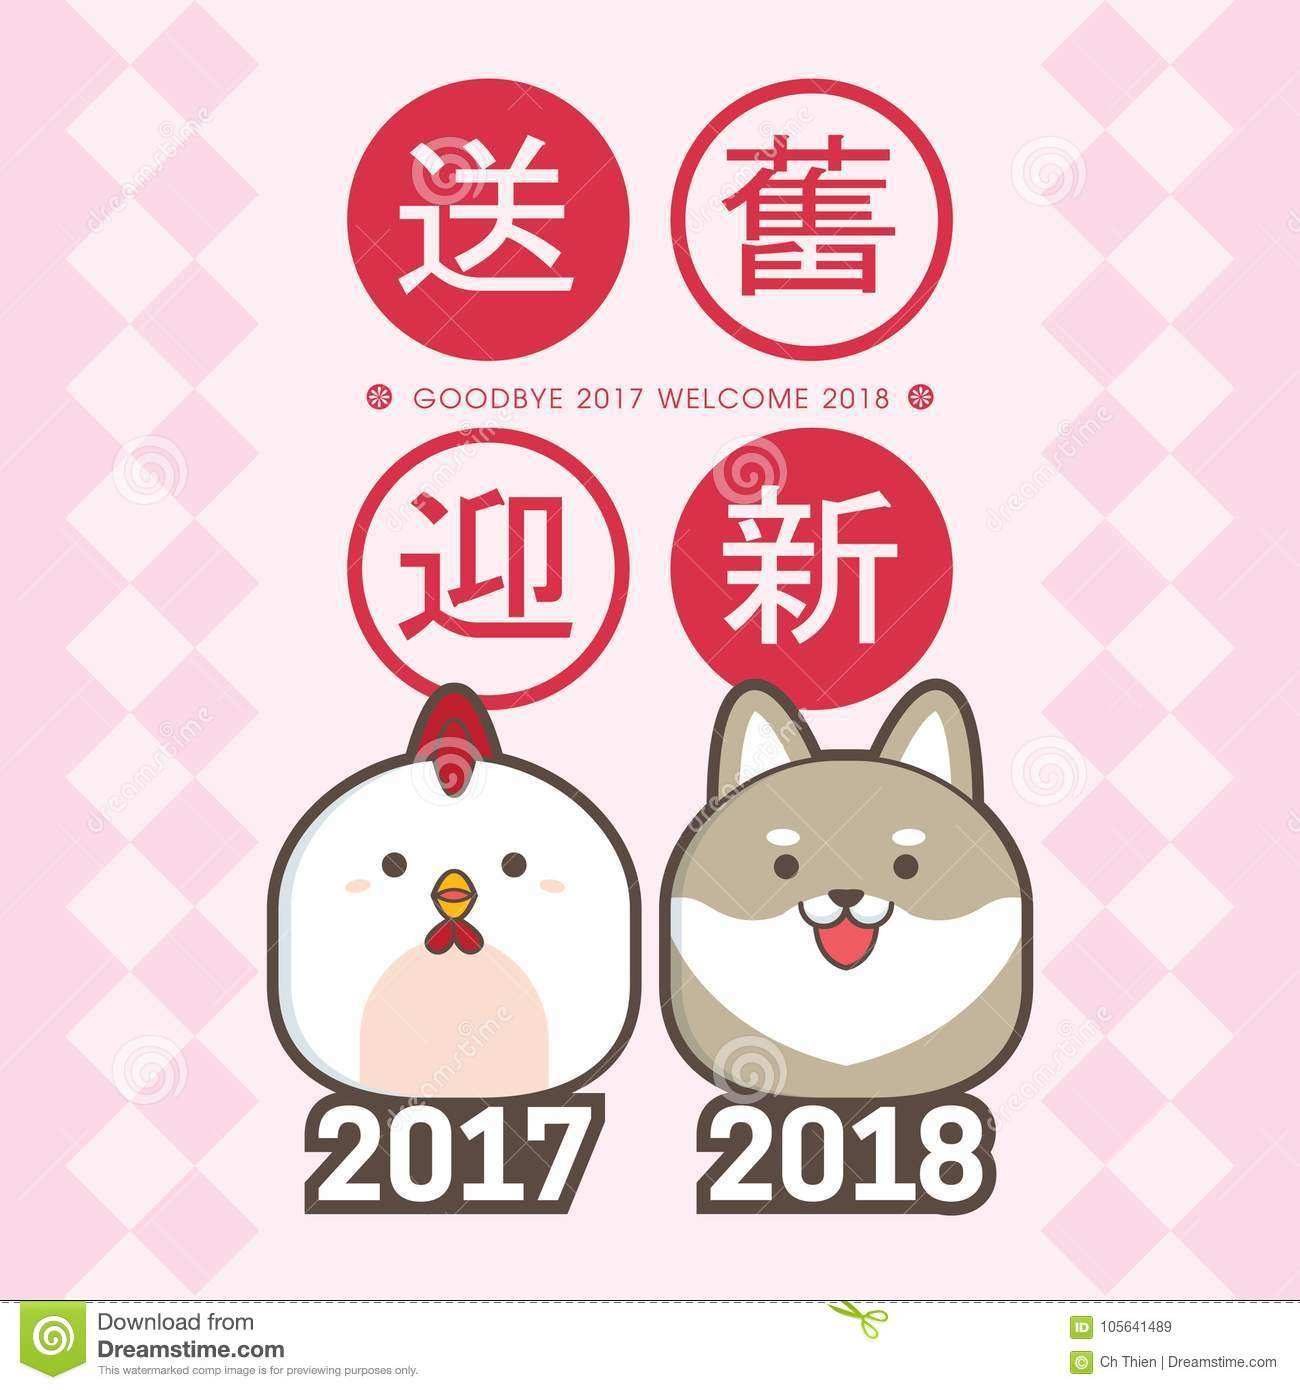 36 Visiting Birthday Card Template Chinese Templates for Birthday Card Template Chinese